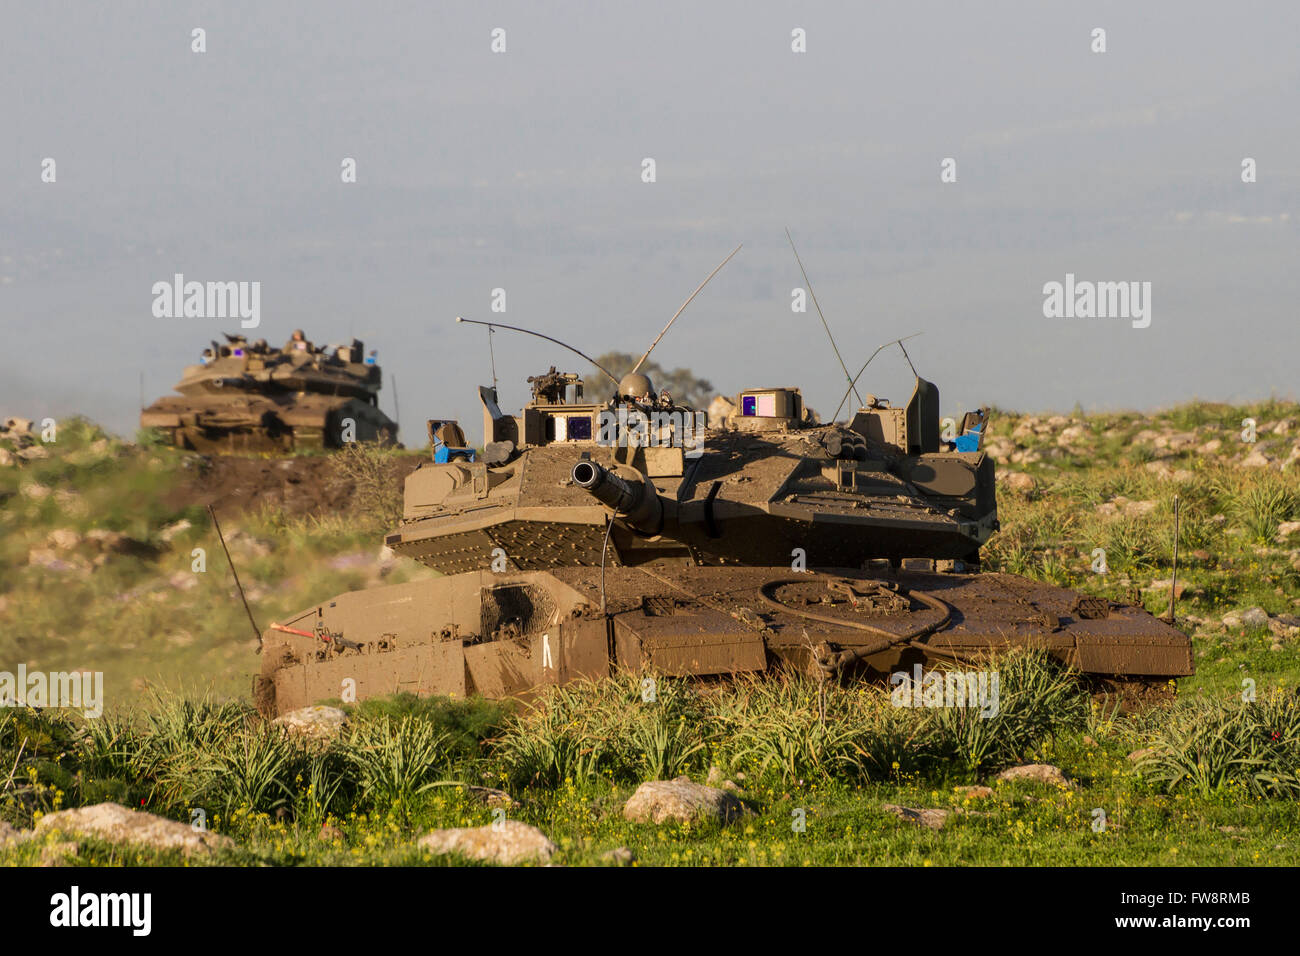 http://c7.alamy.com/comp/FW8RMB/merkava-iv-main-battle-tank-with-trophy-defense-system-in-the-golan-FW8RMB.jpg